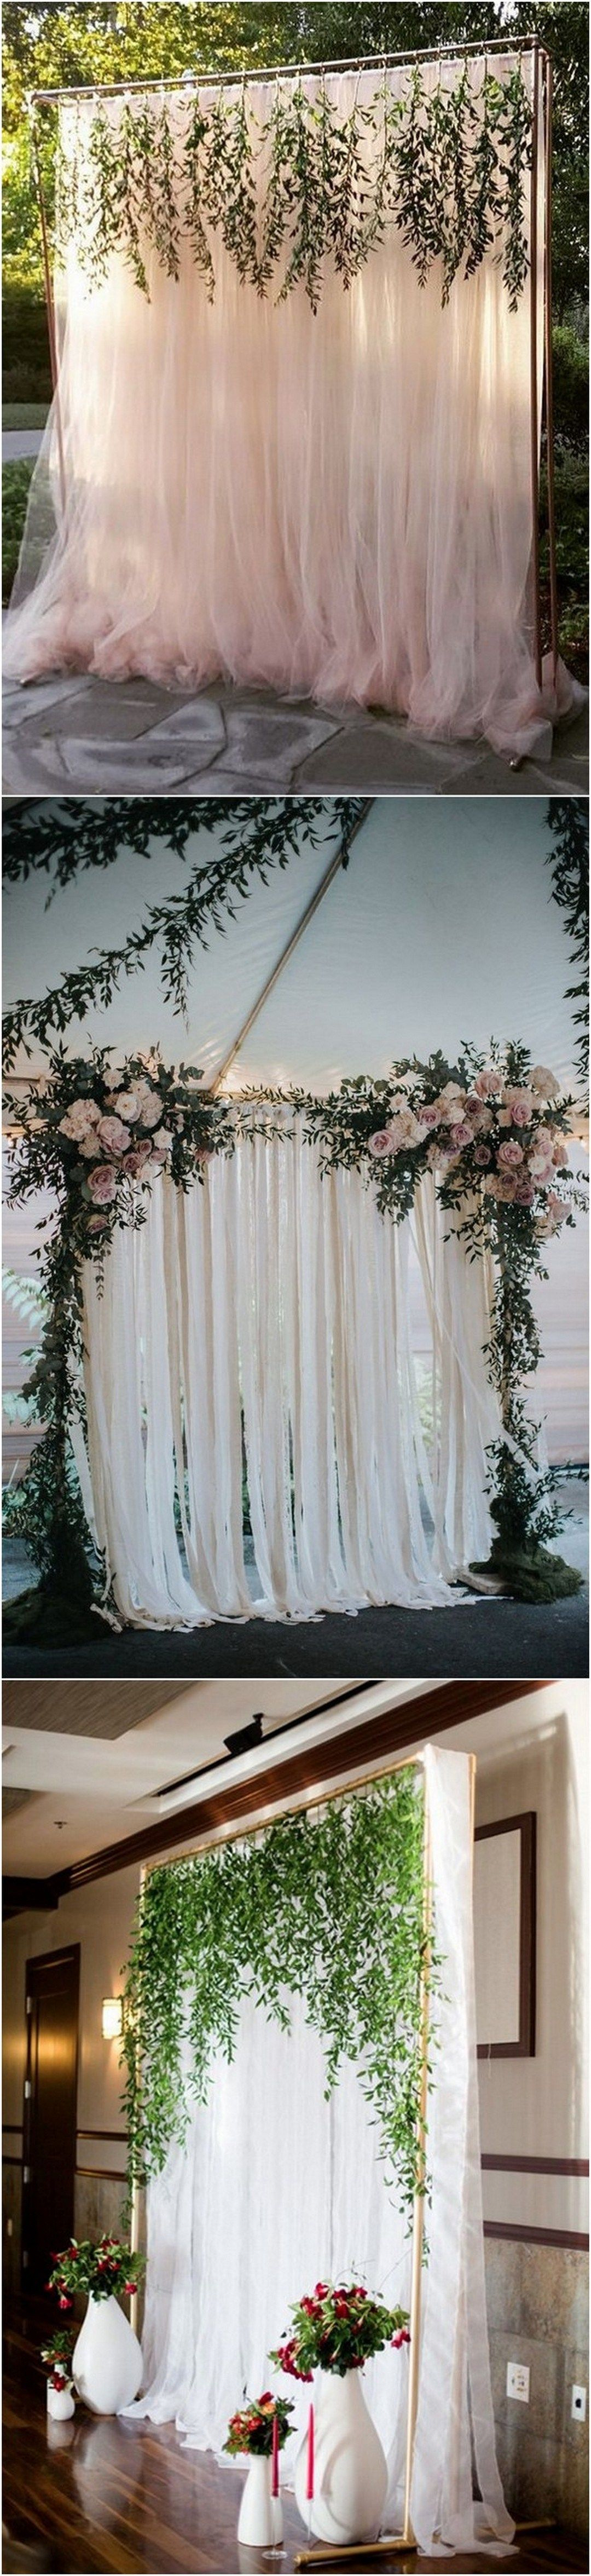 Diy wedding decoration to save budget for your big day in